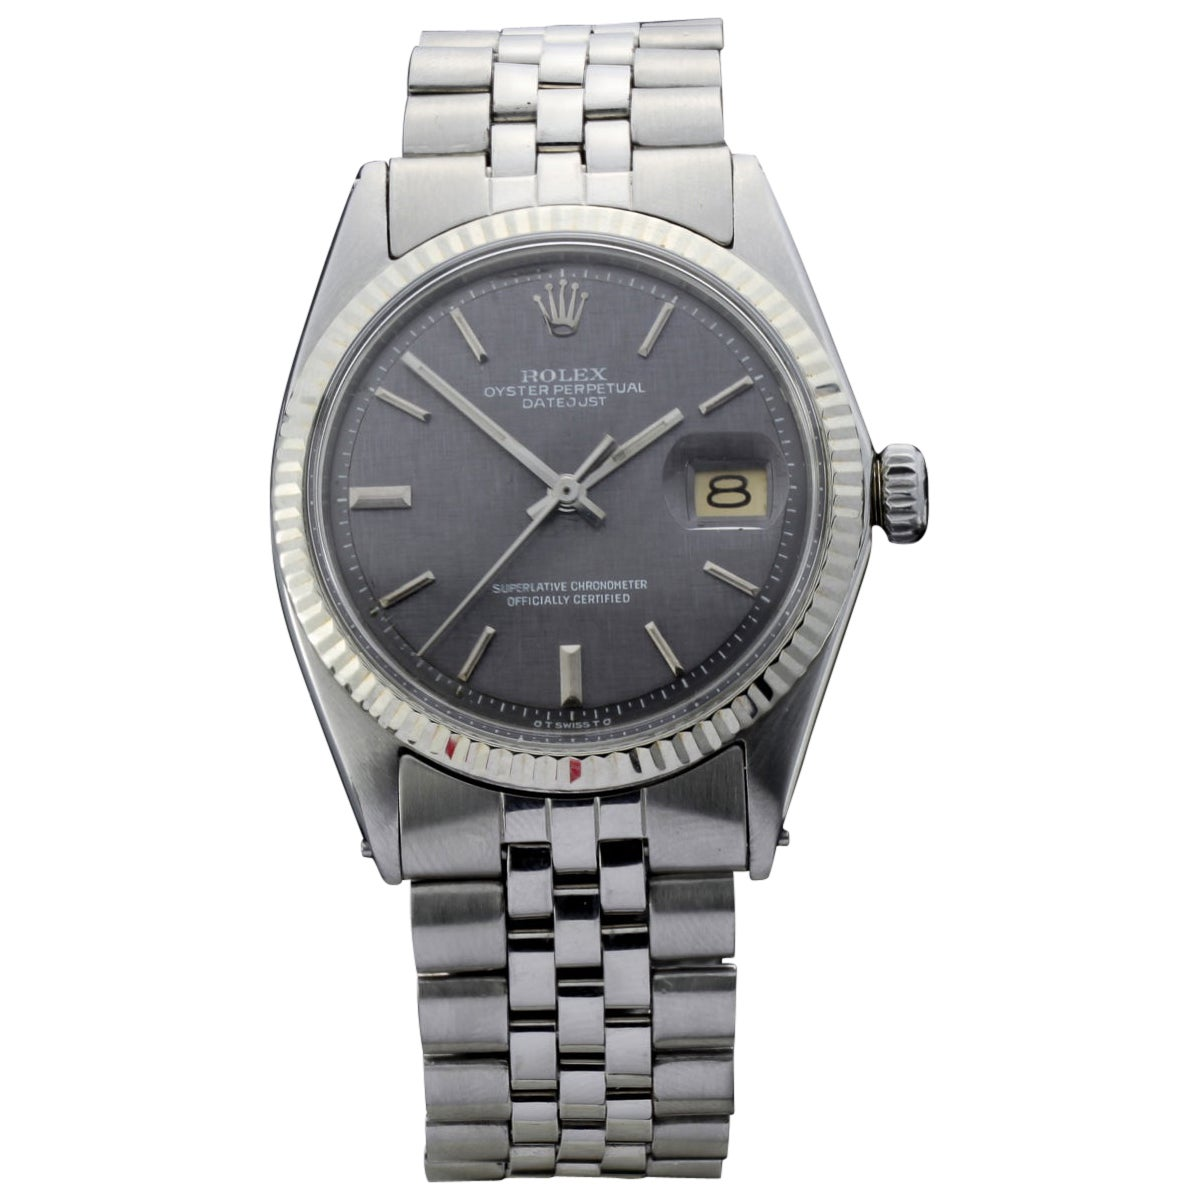 Rolex Oyster Perpetual DateJust Rare Grey Dial Ref 1603